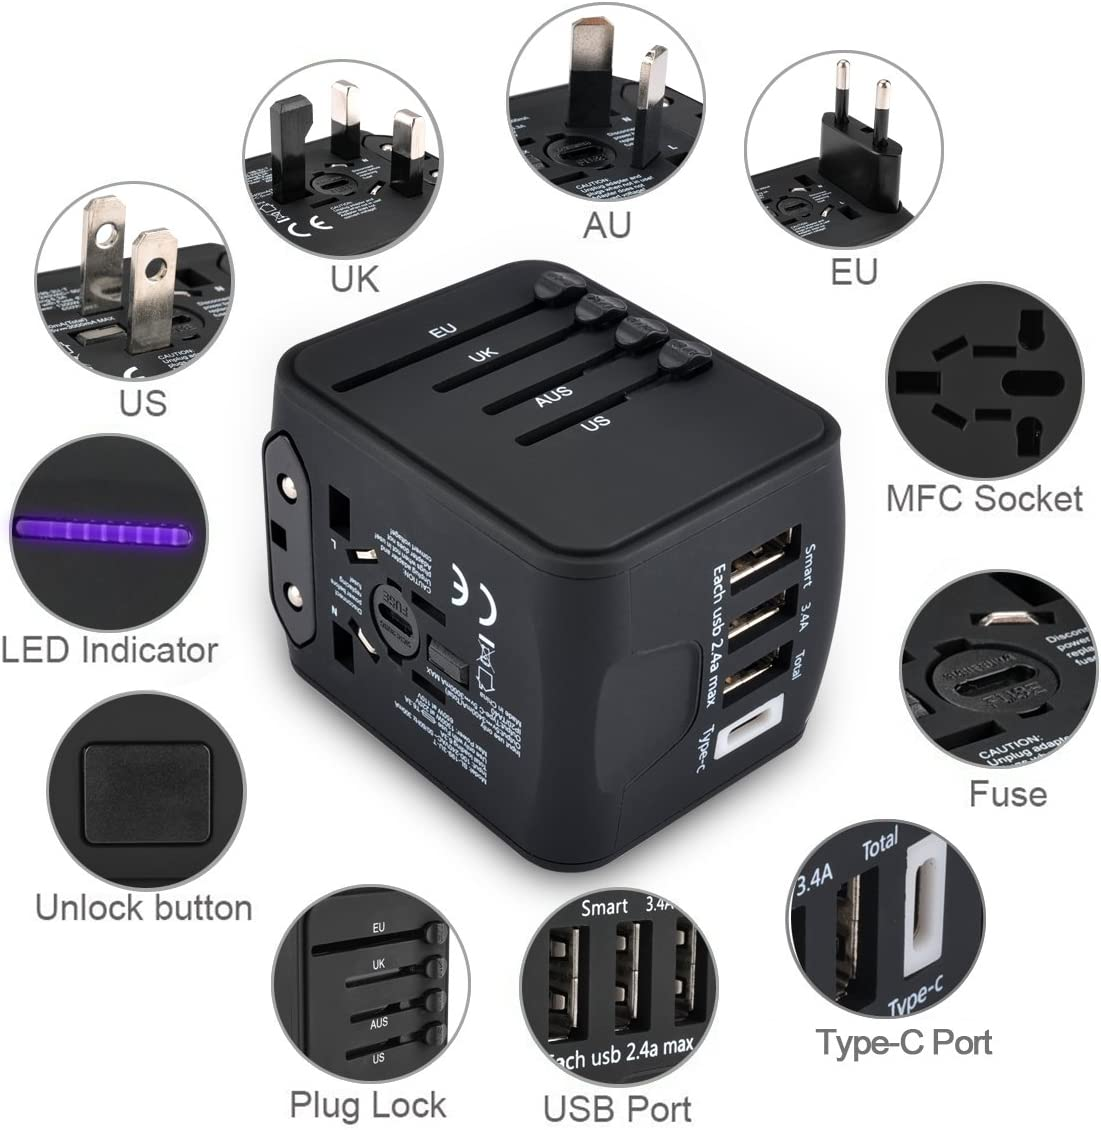 Universal Small Travel Adapter Wall Charger Available for US UK European Asia Covers more than 150 countries International Travel Power Adapter with 3.4A 3 USB and 1 Type-C Charging Ports